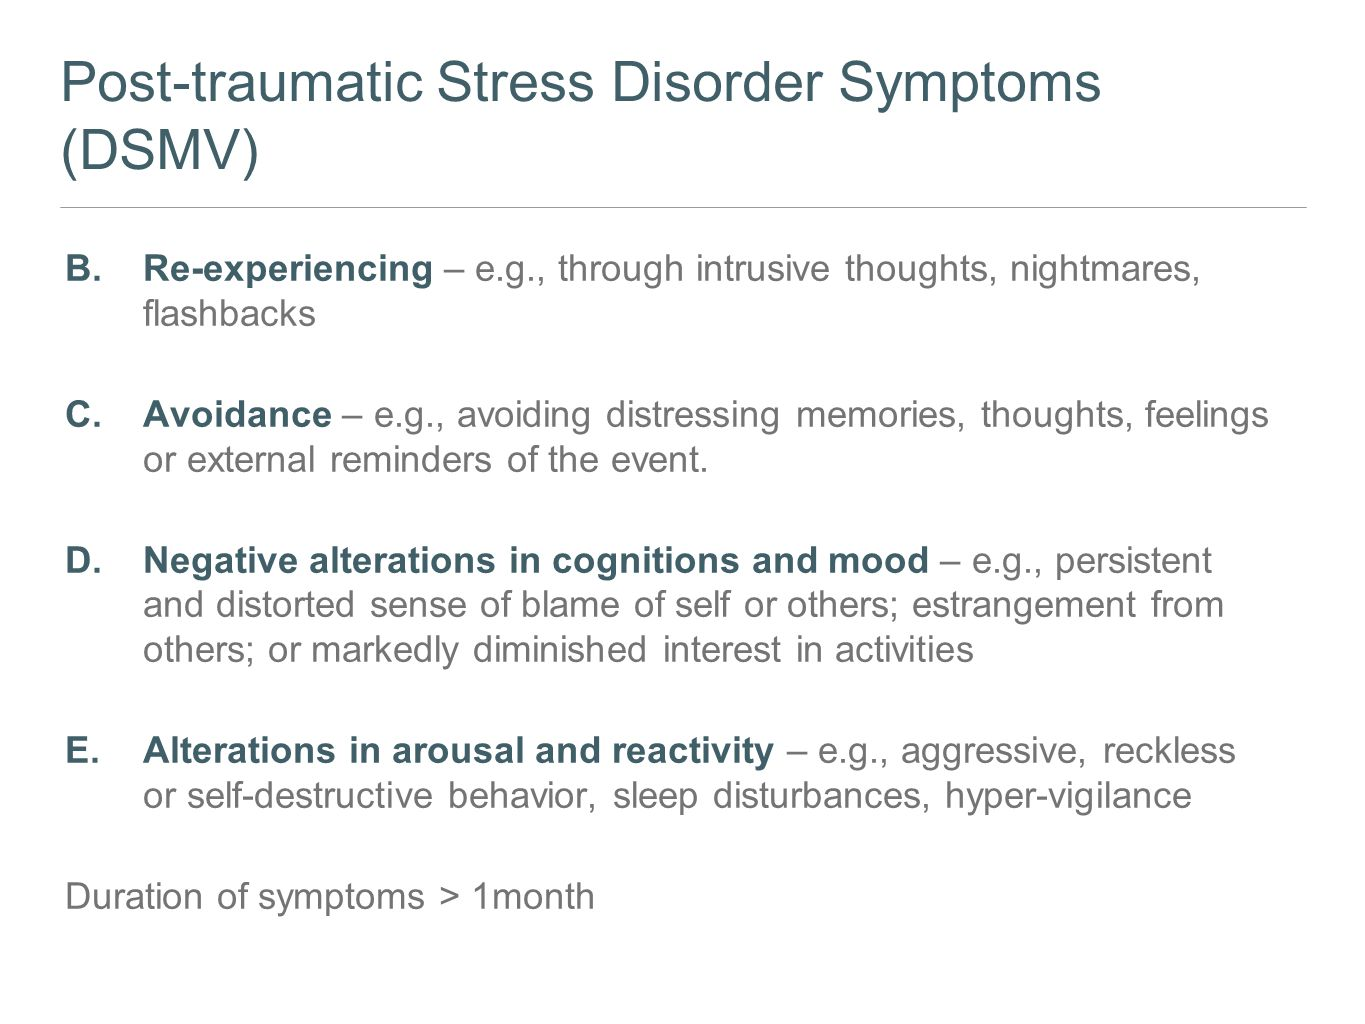 an introduction to the causes and management of post traumatic stress disorder Ptsd, introduction, historical aspect, presentation, dsm criteria, icd 10 criteria   post traumatic stress disorder presenter – dr utkarsh modi  etiology •  ptsd is defined in terms of etiology as much as phenomenology.